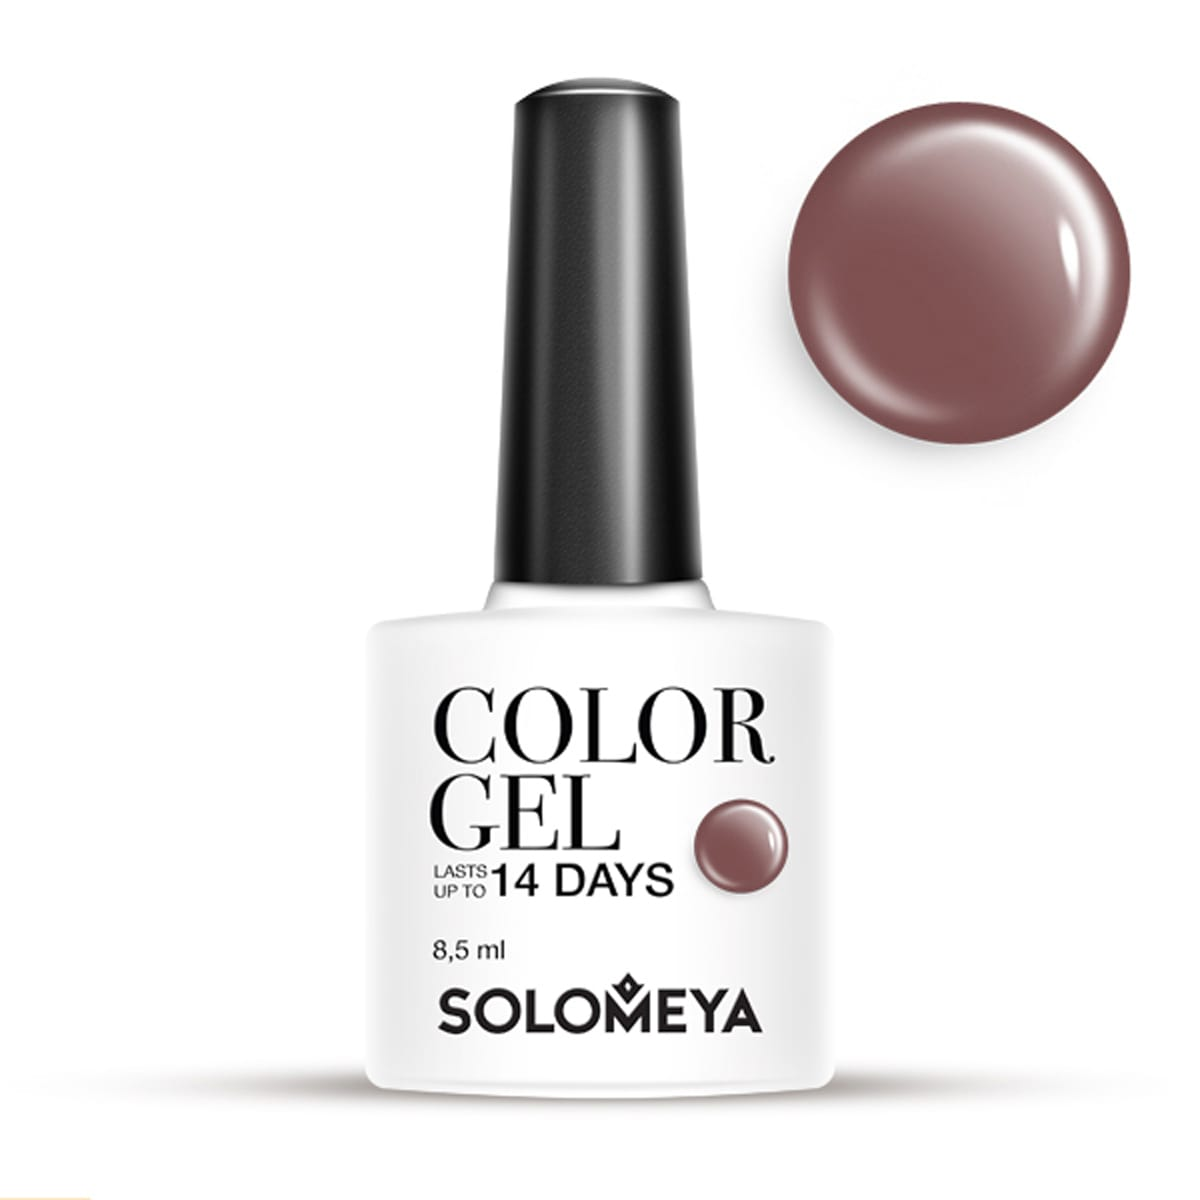 SOLOMEYA Гель-лак для ногтей SCG005 Эспрессо / Color Gel Espresso 8,5мл гель лаки solomeya гель лак color gel тон espresso scg005 эспрессо